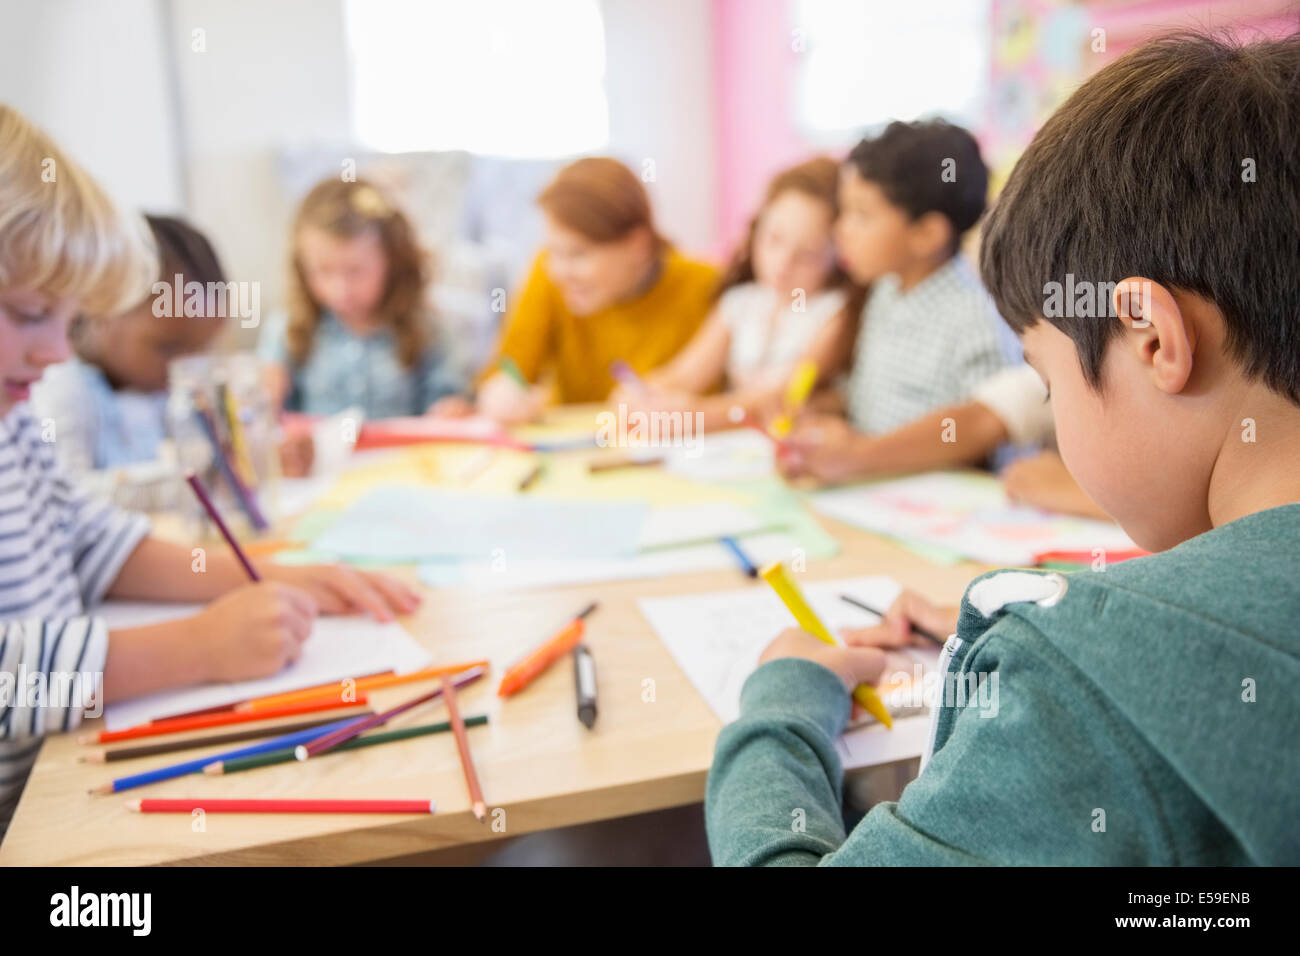 Teacher and students drawing in classroom - Stock Image